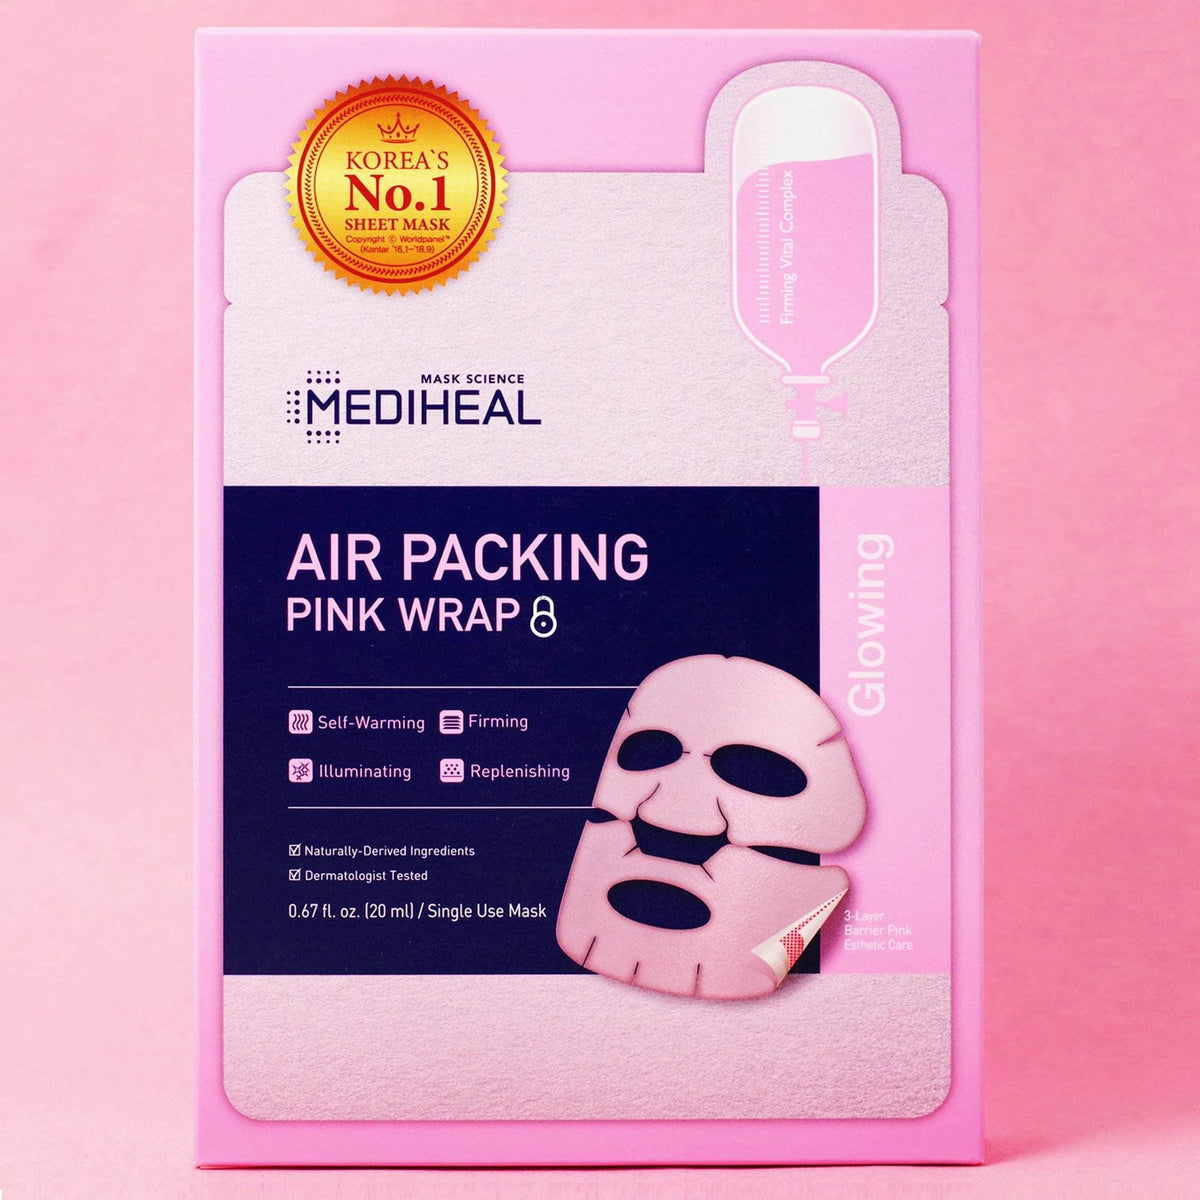 MEDIHEAL Air Packing Pink Wrap Mask - 5 pack